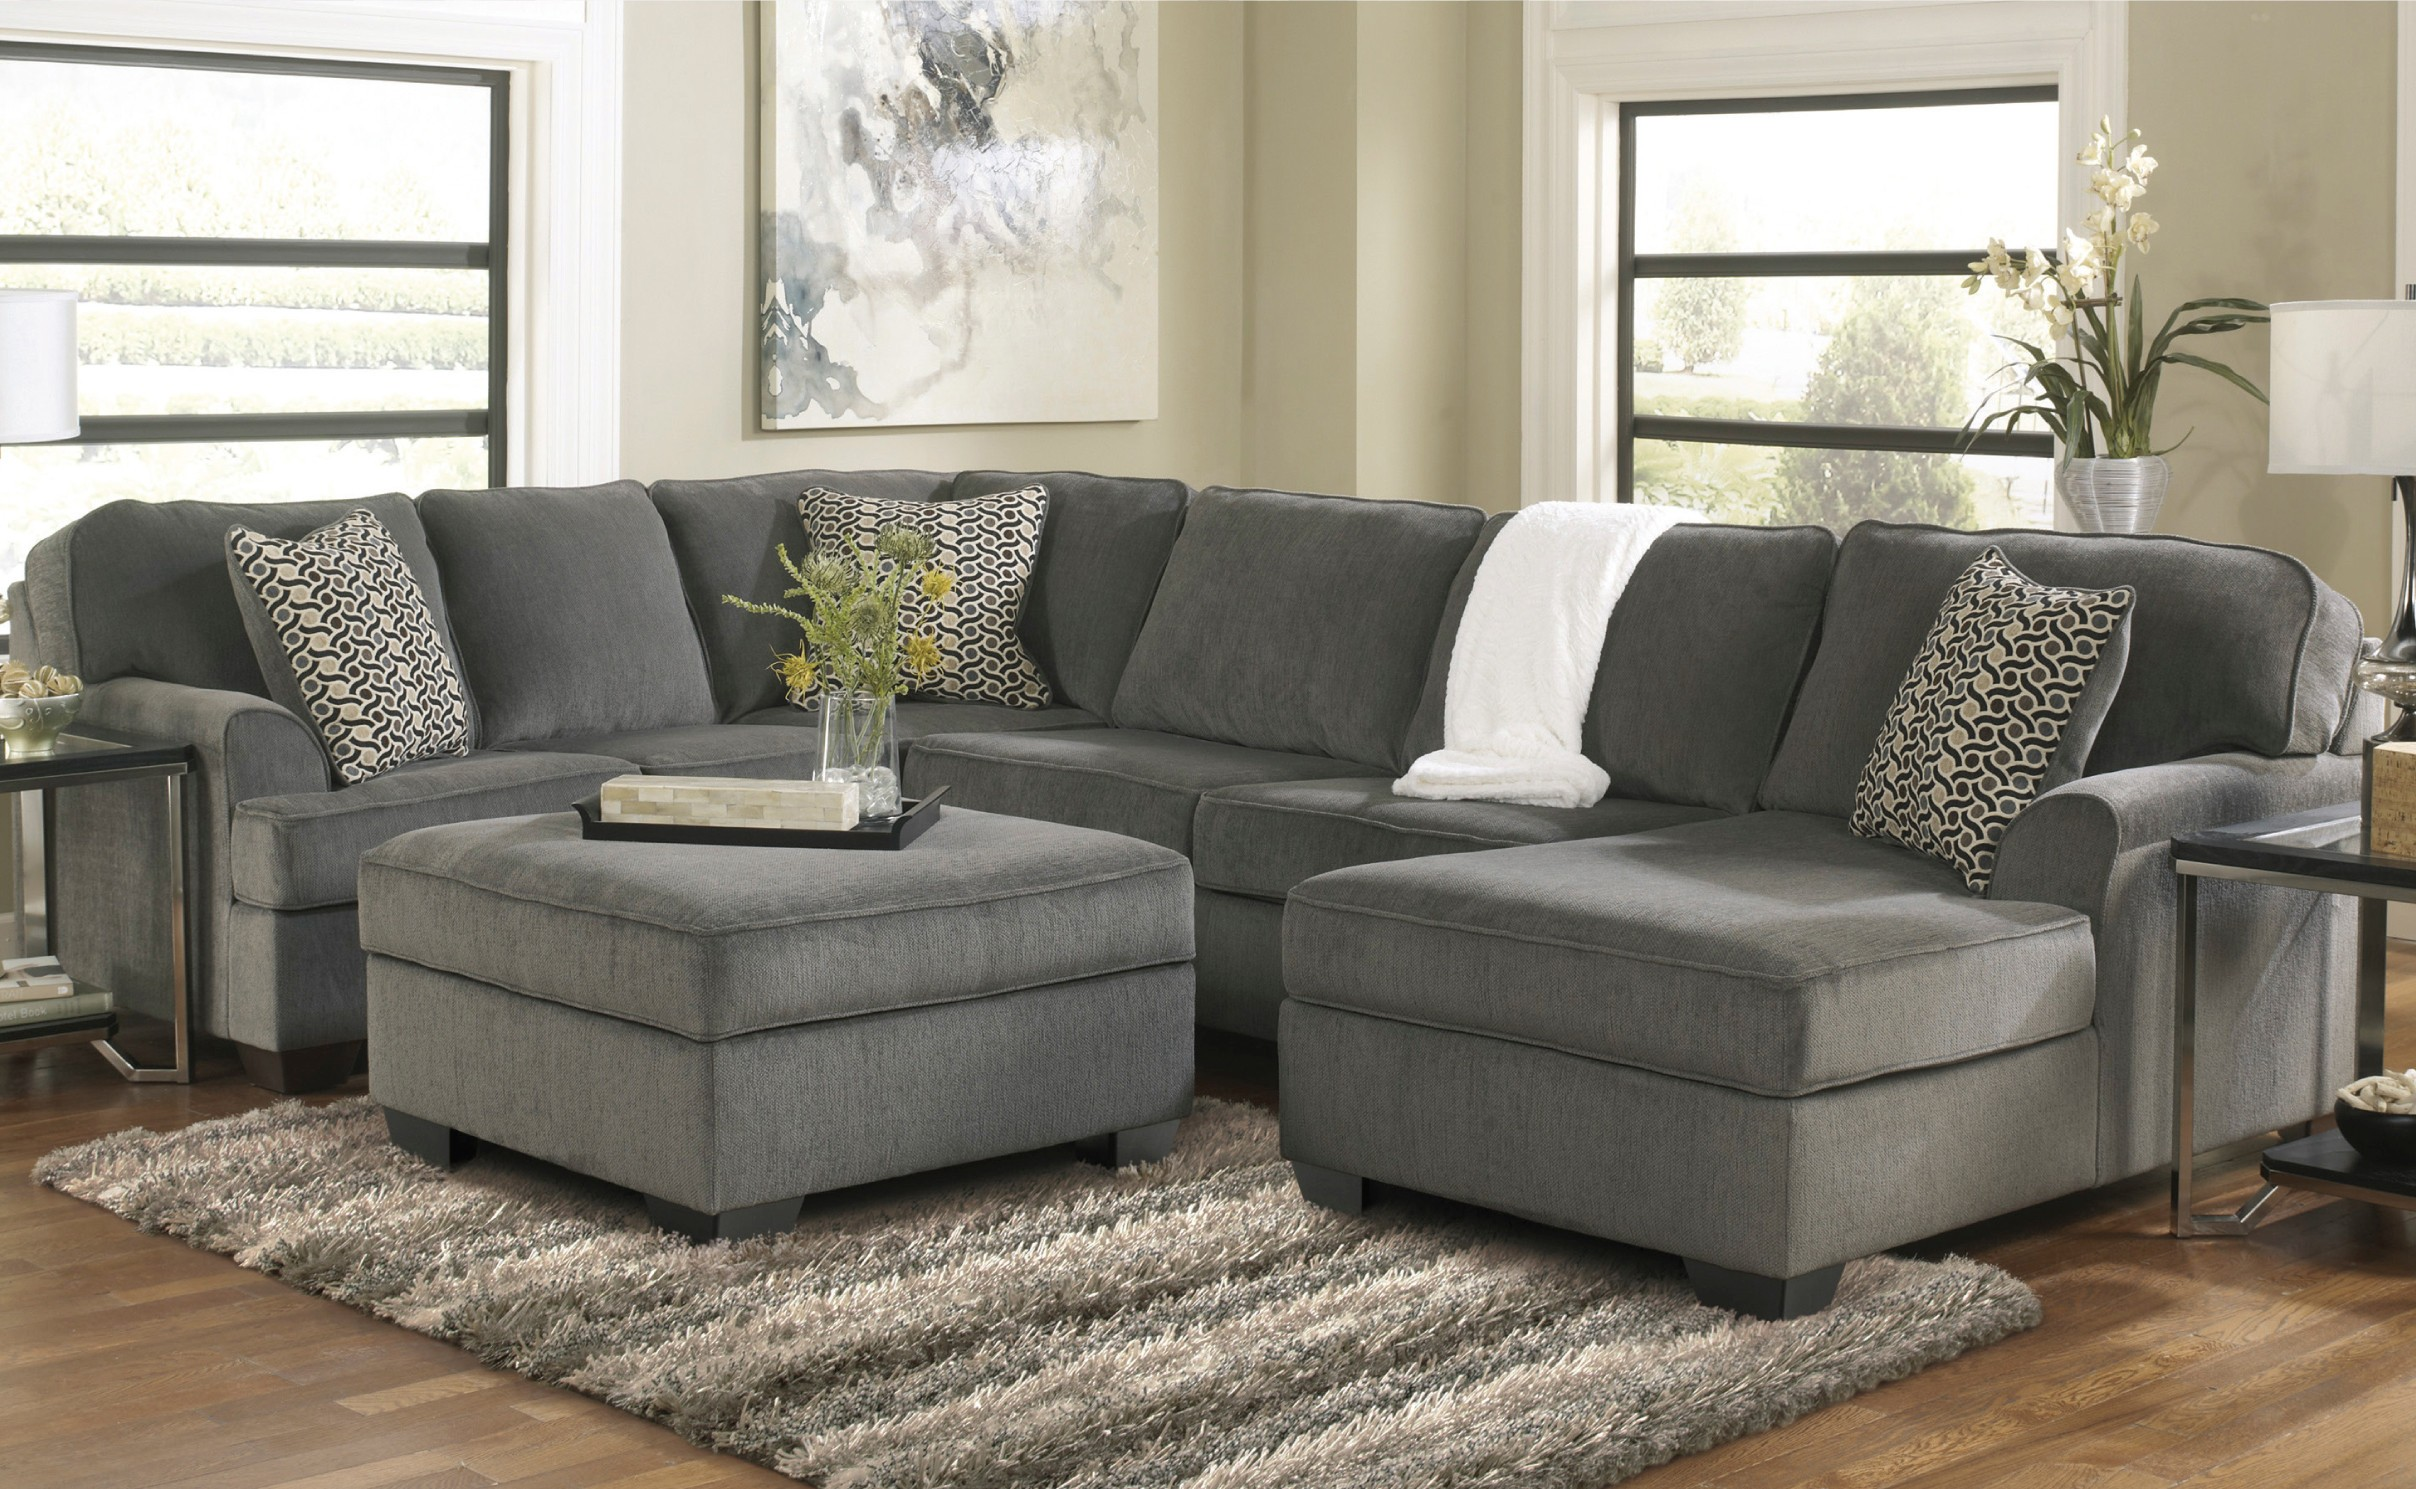 Clearance Sectional sofas Inspirational Sectional sofas Houston Clearance Sectional sofa In Raleigh Nc Portrait